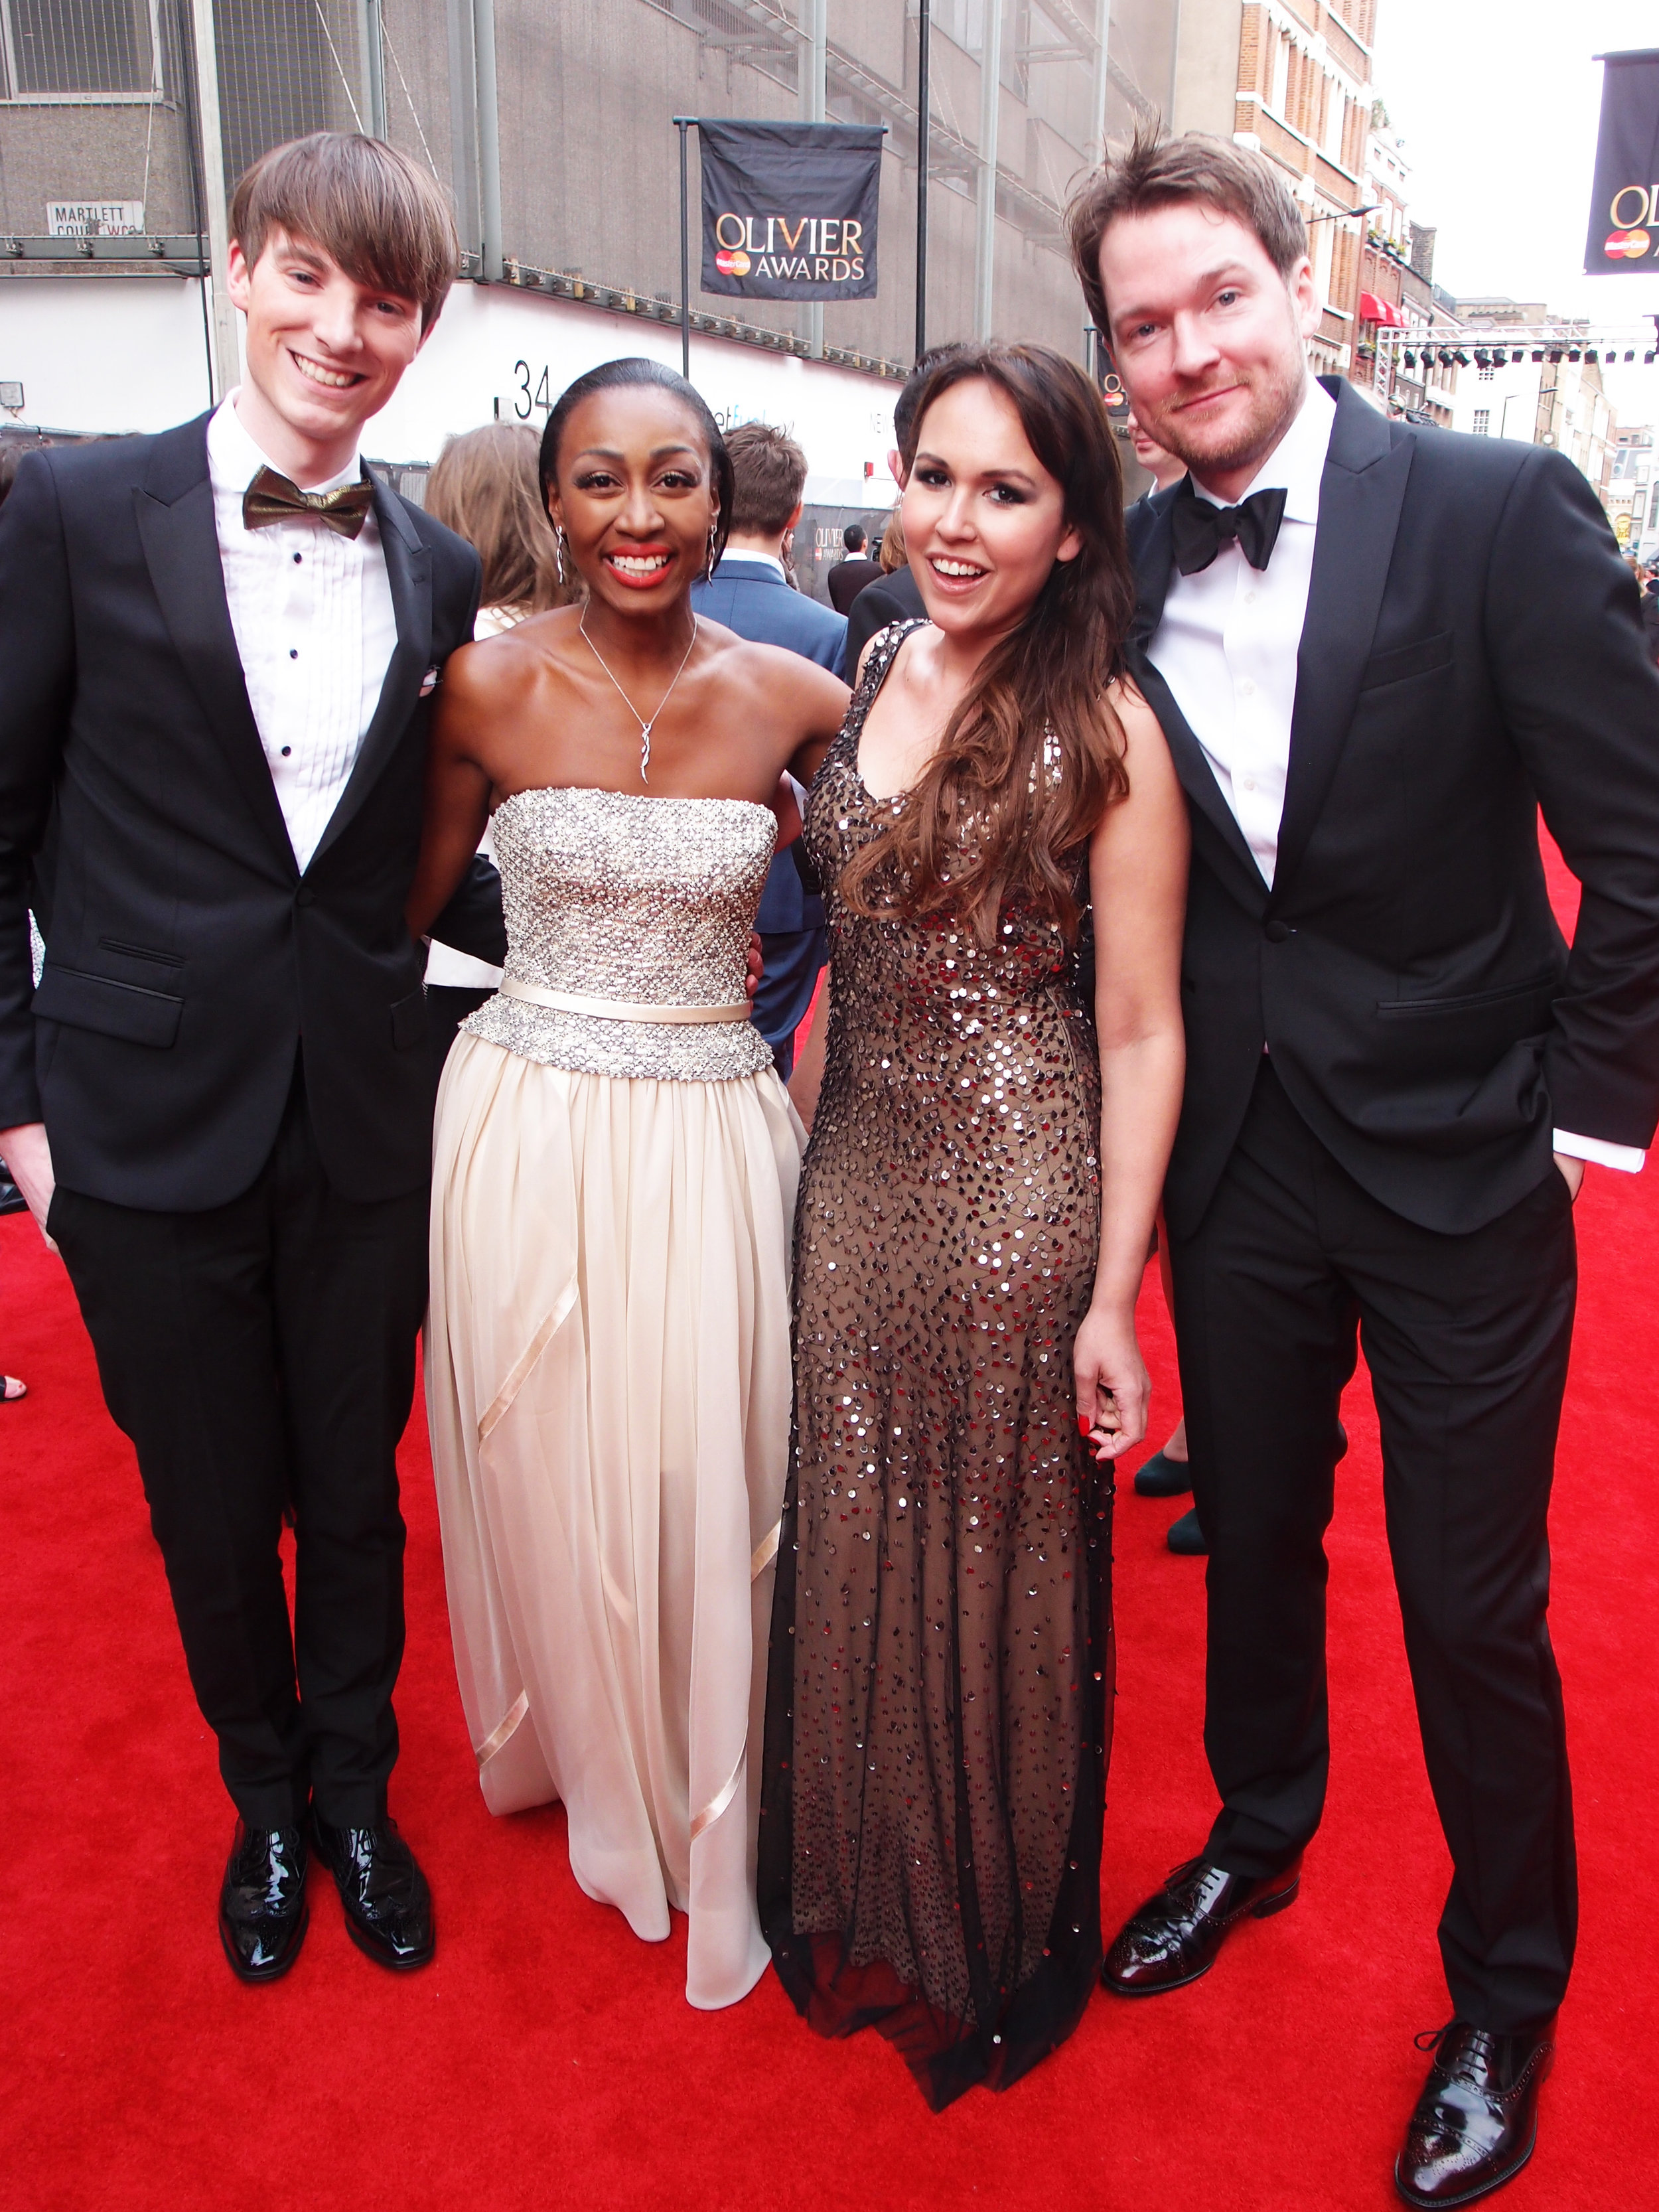 Beverley Knight, Killian Donnelly & Richard Brownlie-Marshall